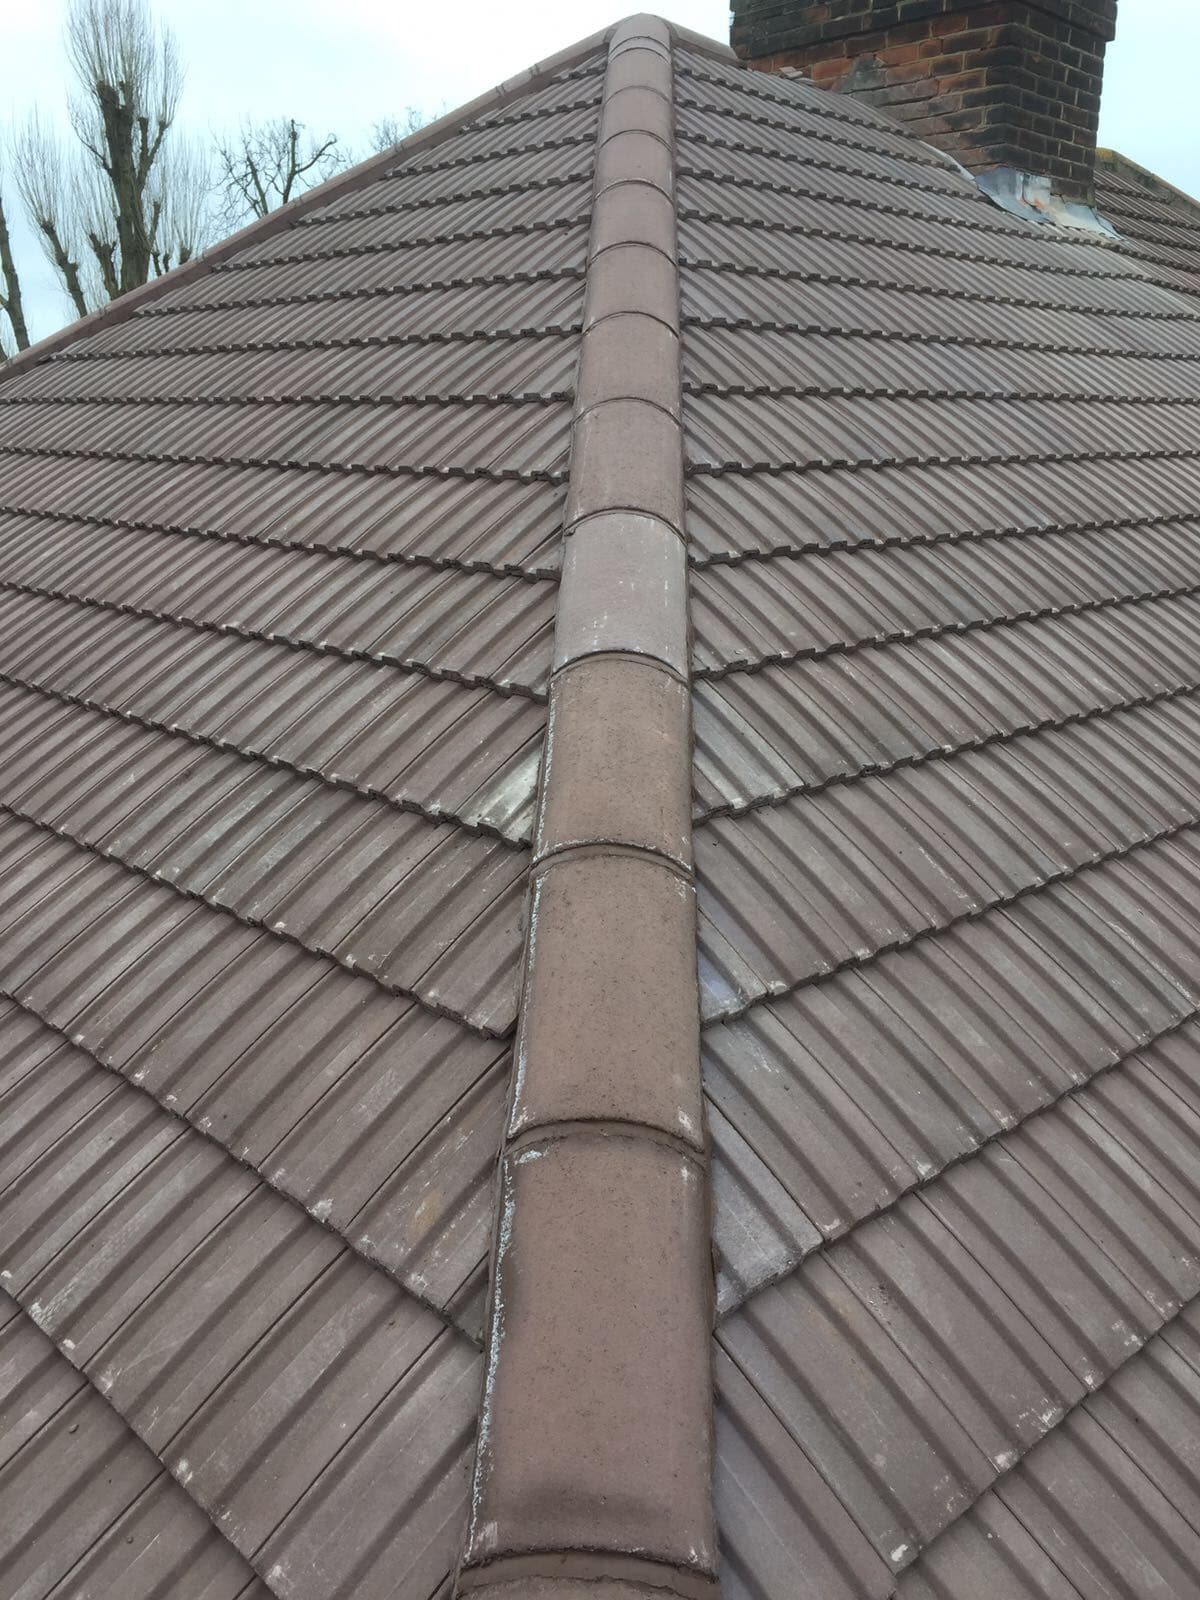 Tiled Roofing Installations London